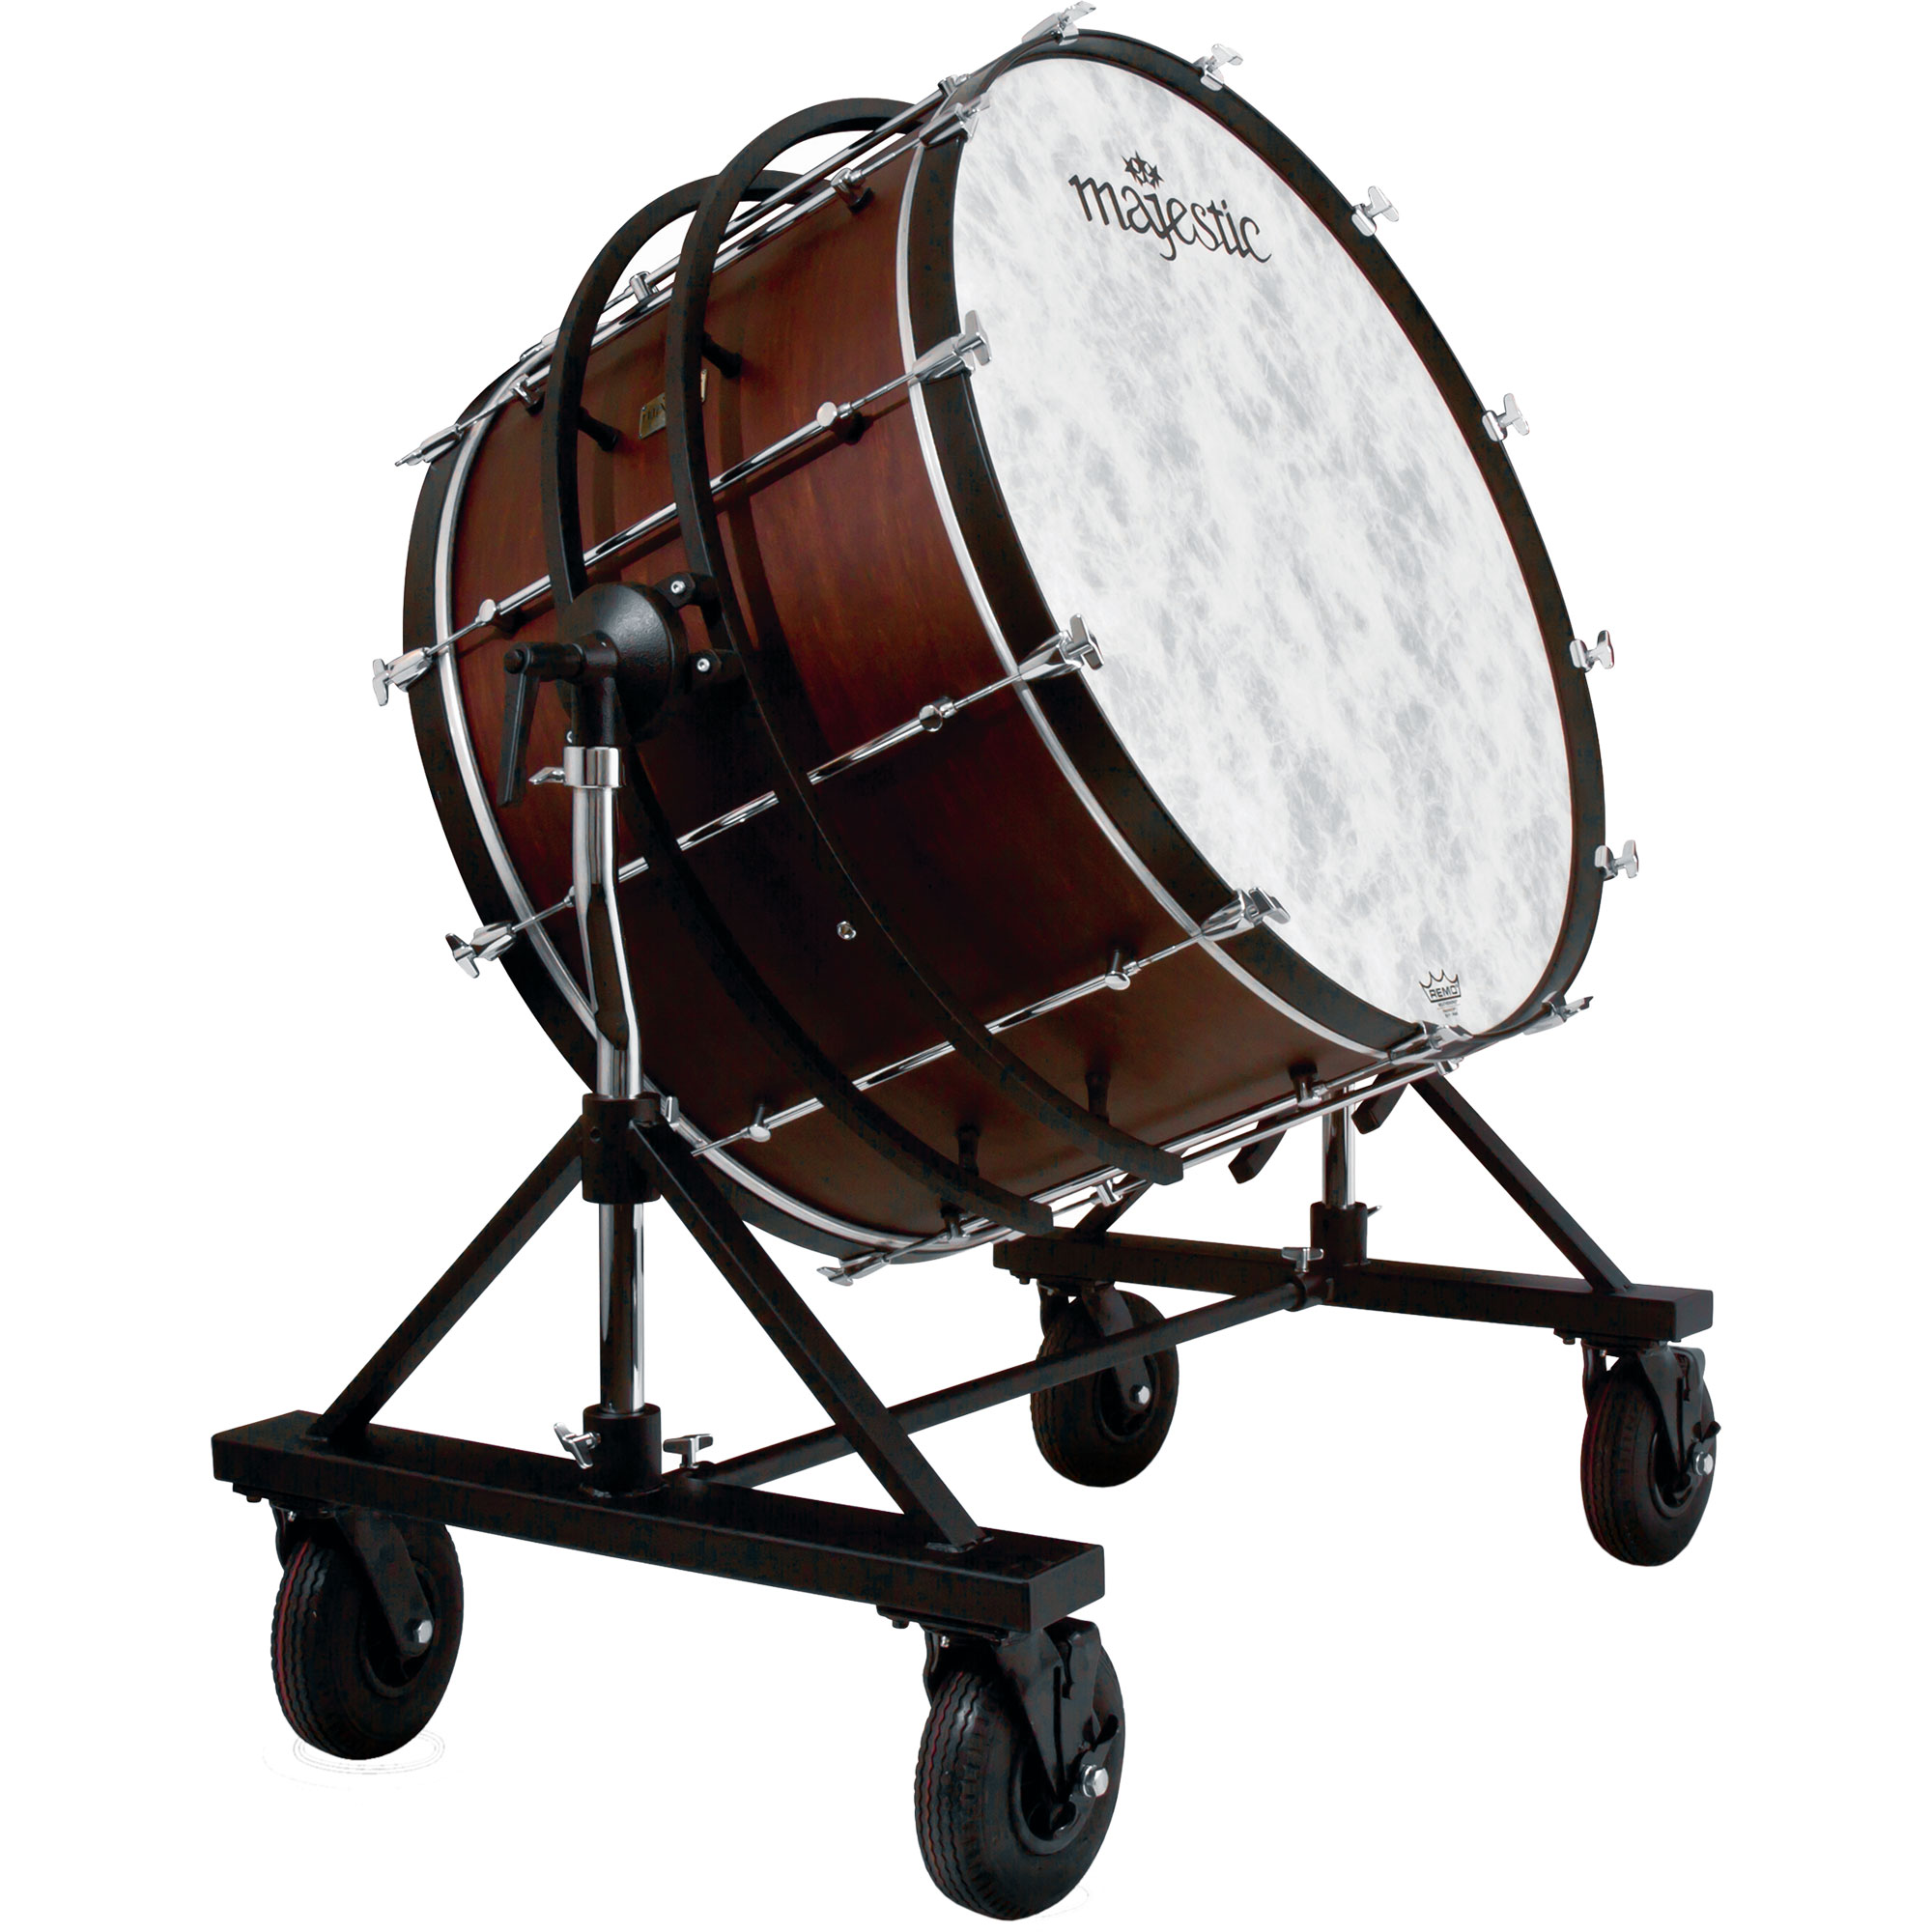 "Majestic 40"" (Diameter) x 22"" (Deep) Prophonic Concert Bass Drum with SSB Suspended Field Tilting Stand"